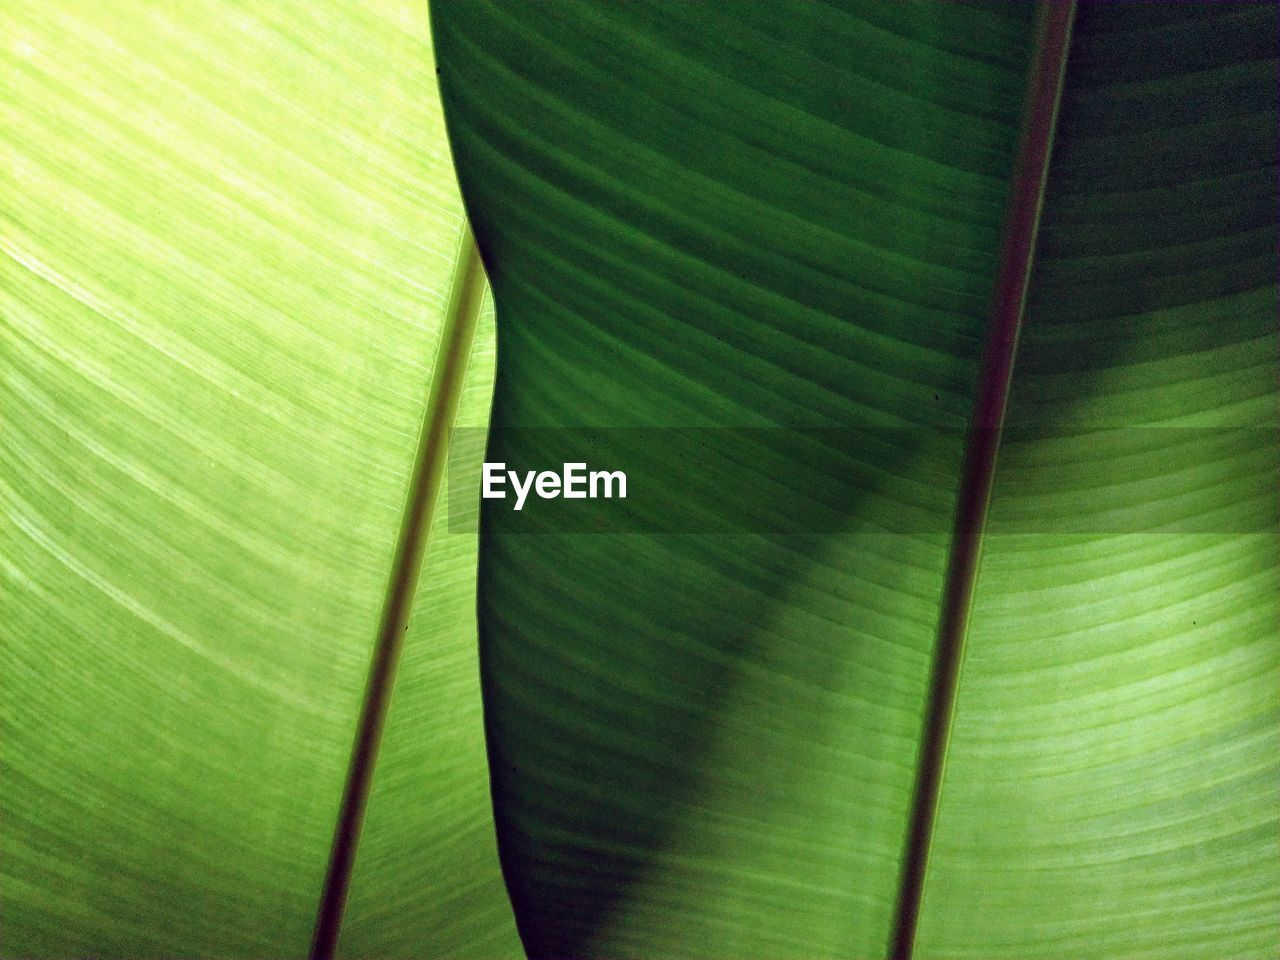 leaf, green color, plant part, banana leaf, backgrounds, full frame, no people, close-up, plant, leaves, leaf vein, pattern, growth, palm leaf, natural pattern, beauty in nature, nature, banana tree, textured, palm tree, abstract, abstract backgrounds